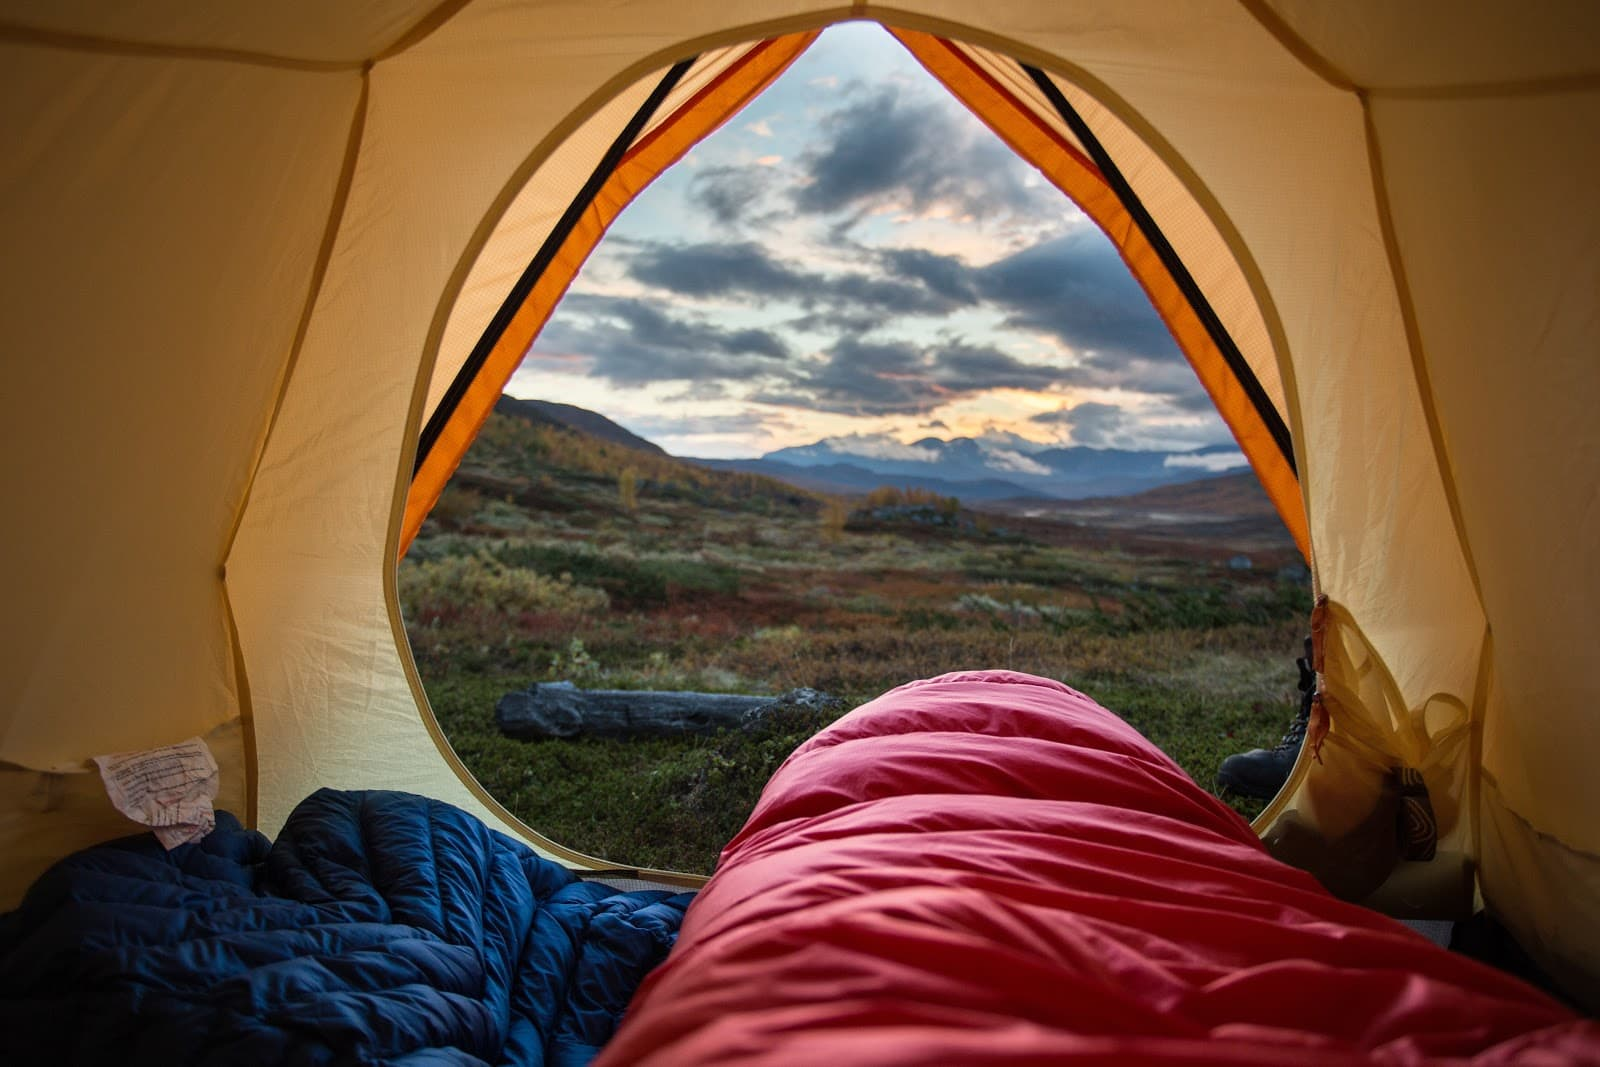 Responsible Down Standard: Is Down Outdoor Gear Ethical or Eco-Friendly?